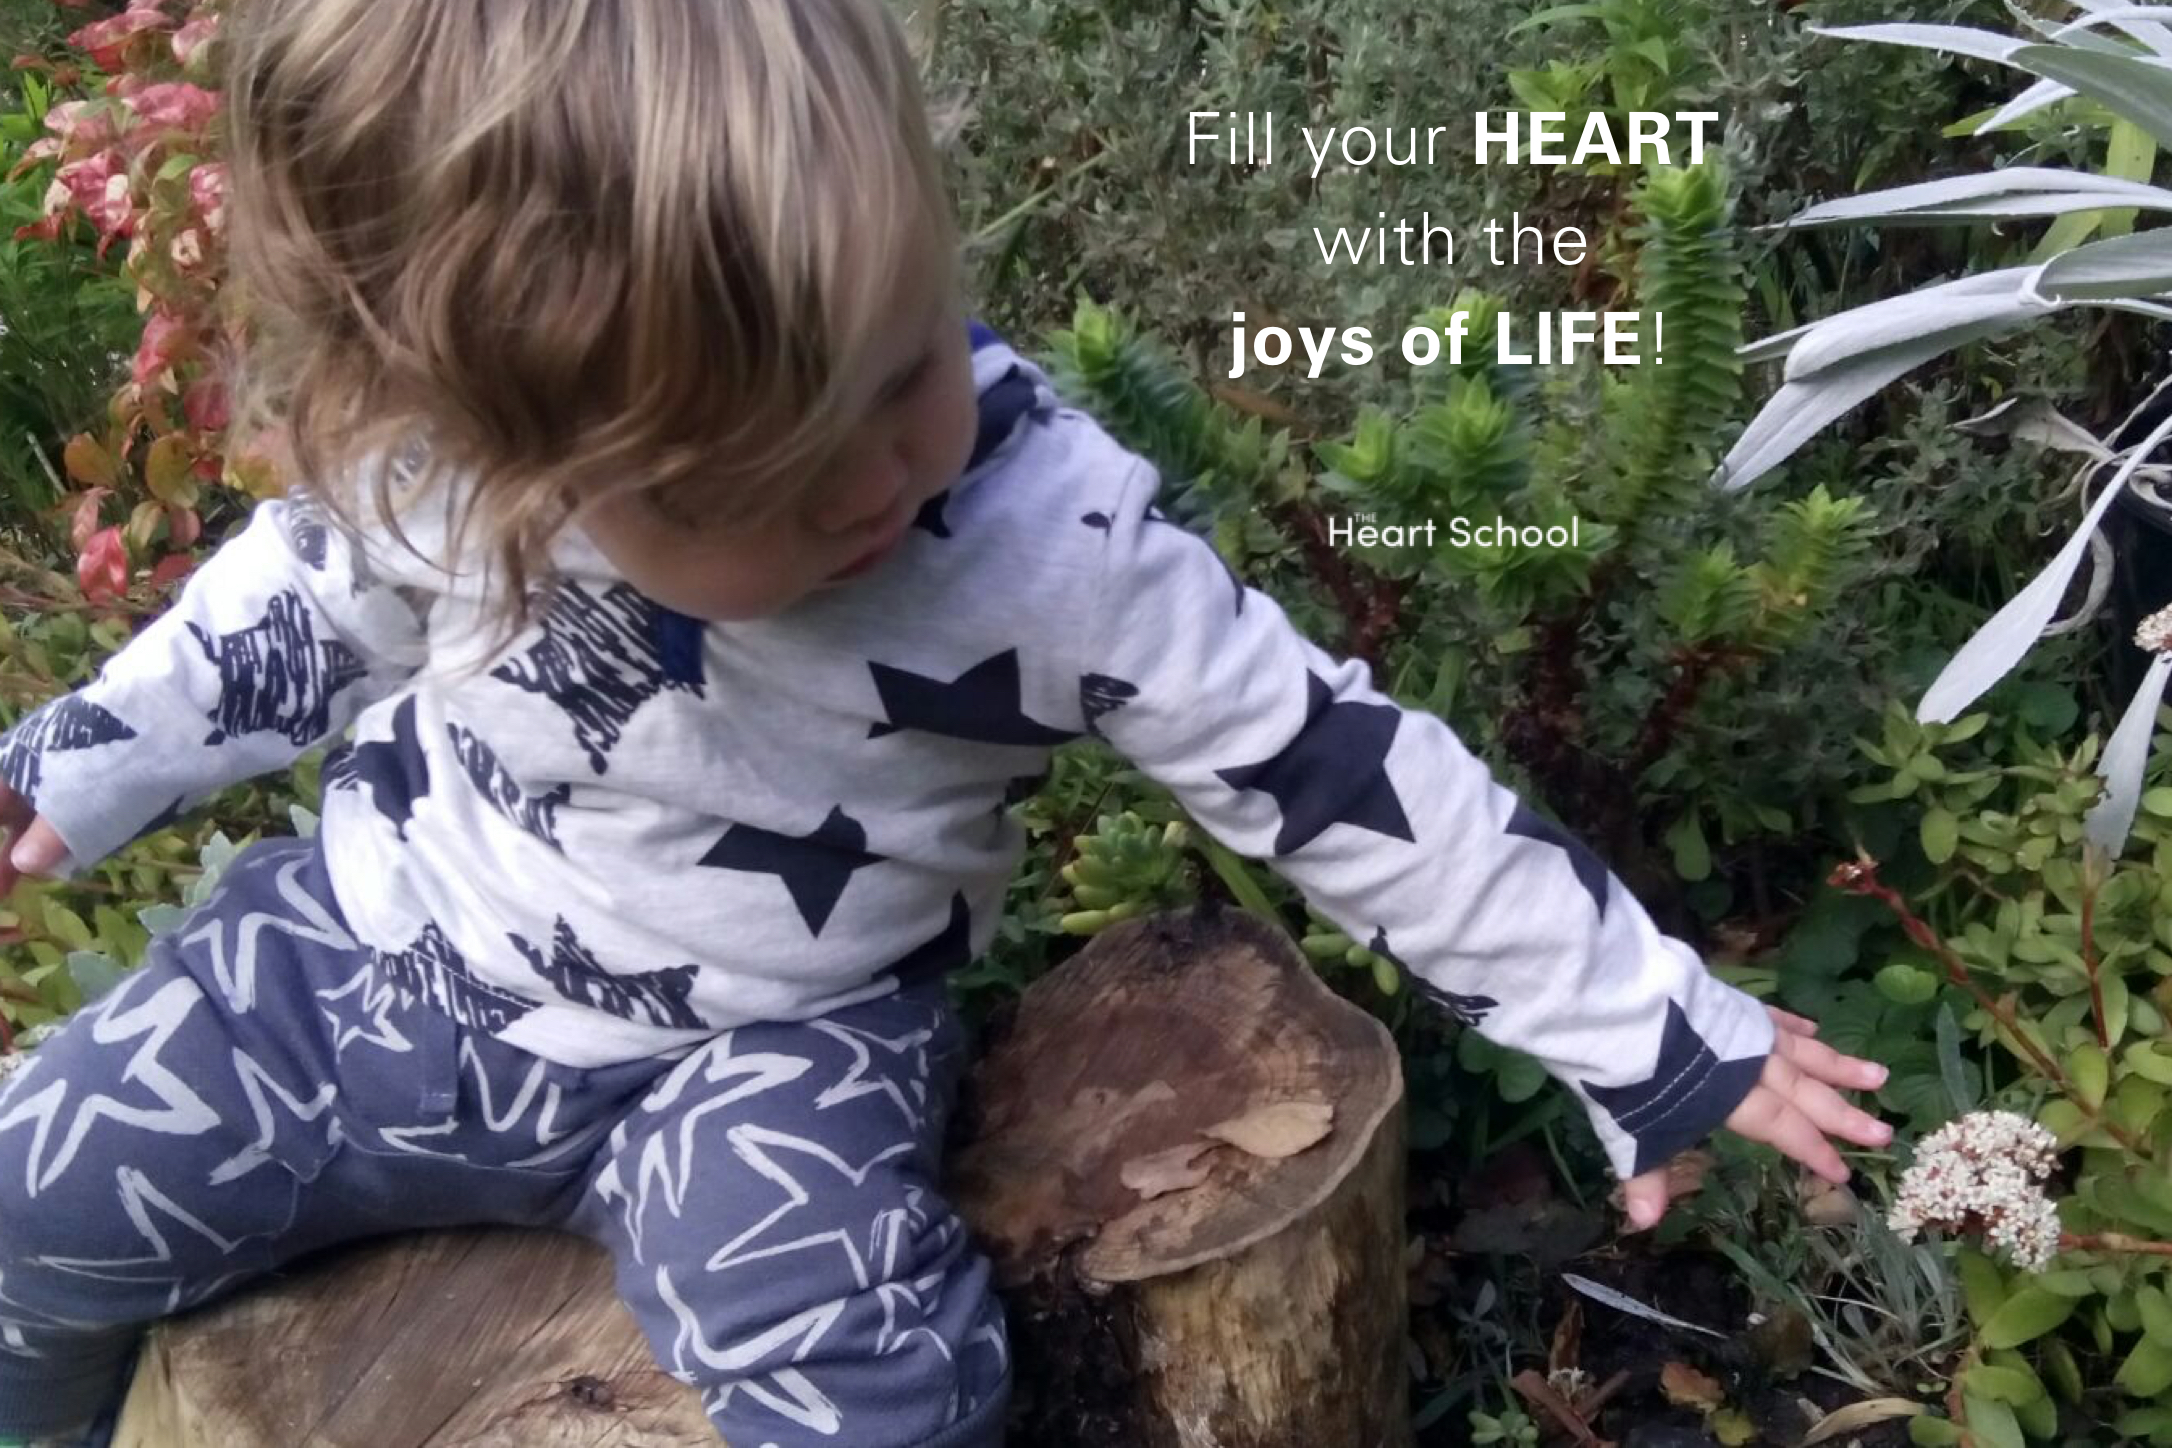 There is nothing as magical as seeing a child engrossed in observing one of nature's miracles. To young children nothing is ordinary, and young hearts are filled with the joys of life's simple pleasures. Our children have a lot to teach us about being present, being observant and taking nothing for granted!